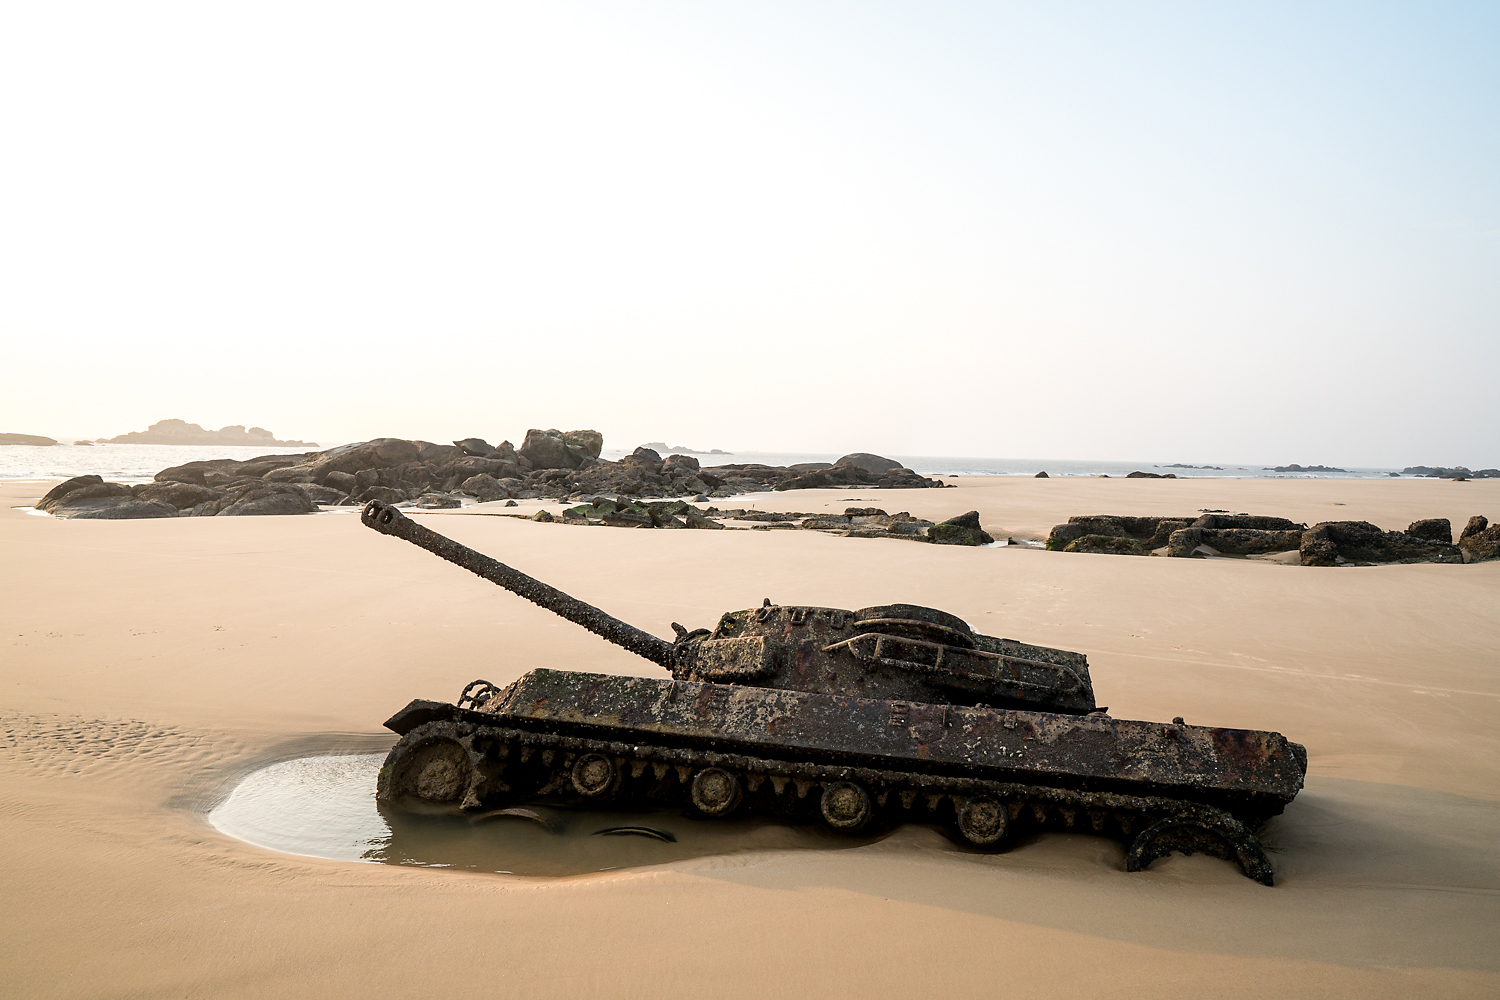 A military tank, half buried in the sand on a beach, is visible at low tide in Kinmen. The island was managed as a military base from 1949 until 1992, when martial law was lifted. KMT leader Chiang Kai-shek stationed a significant portion of his army on Kinmen, planning to retake mainland China from there. At the height of the Cold War, as many as 100,000 soldiers were barracked on Kinmen, outnumbering civilians. Today, there are only about 3,000 troops left on the island.